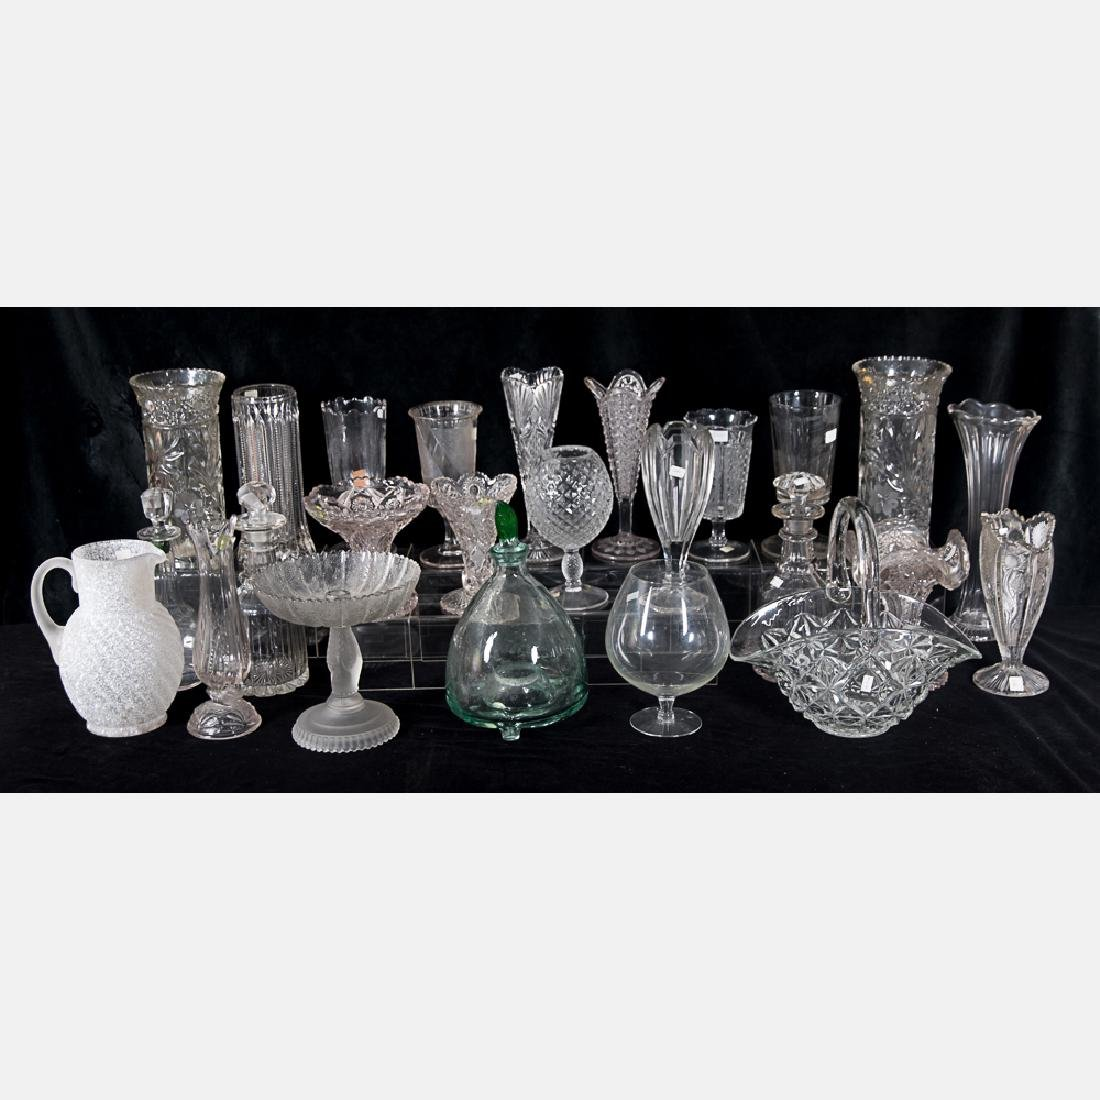 A Collection of Molded, Blown and Etched Clear Glass